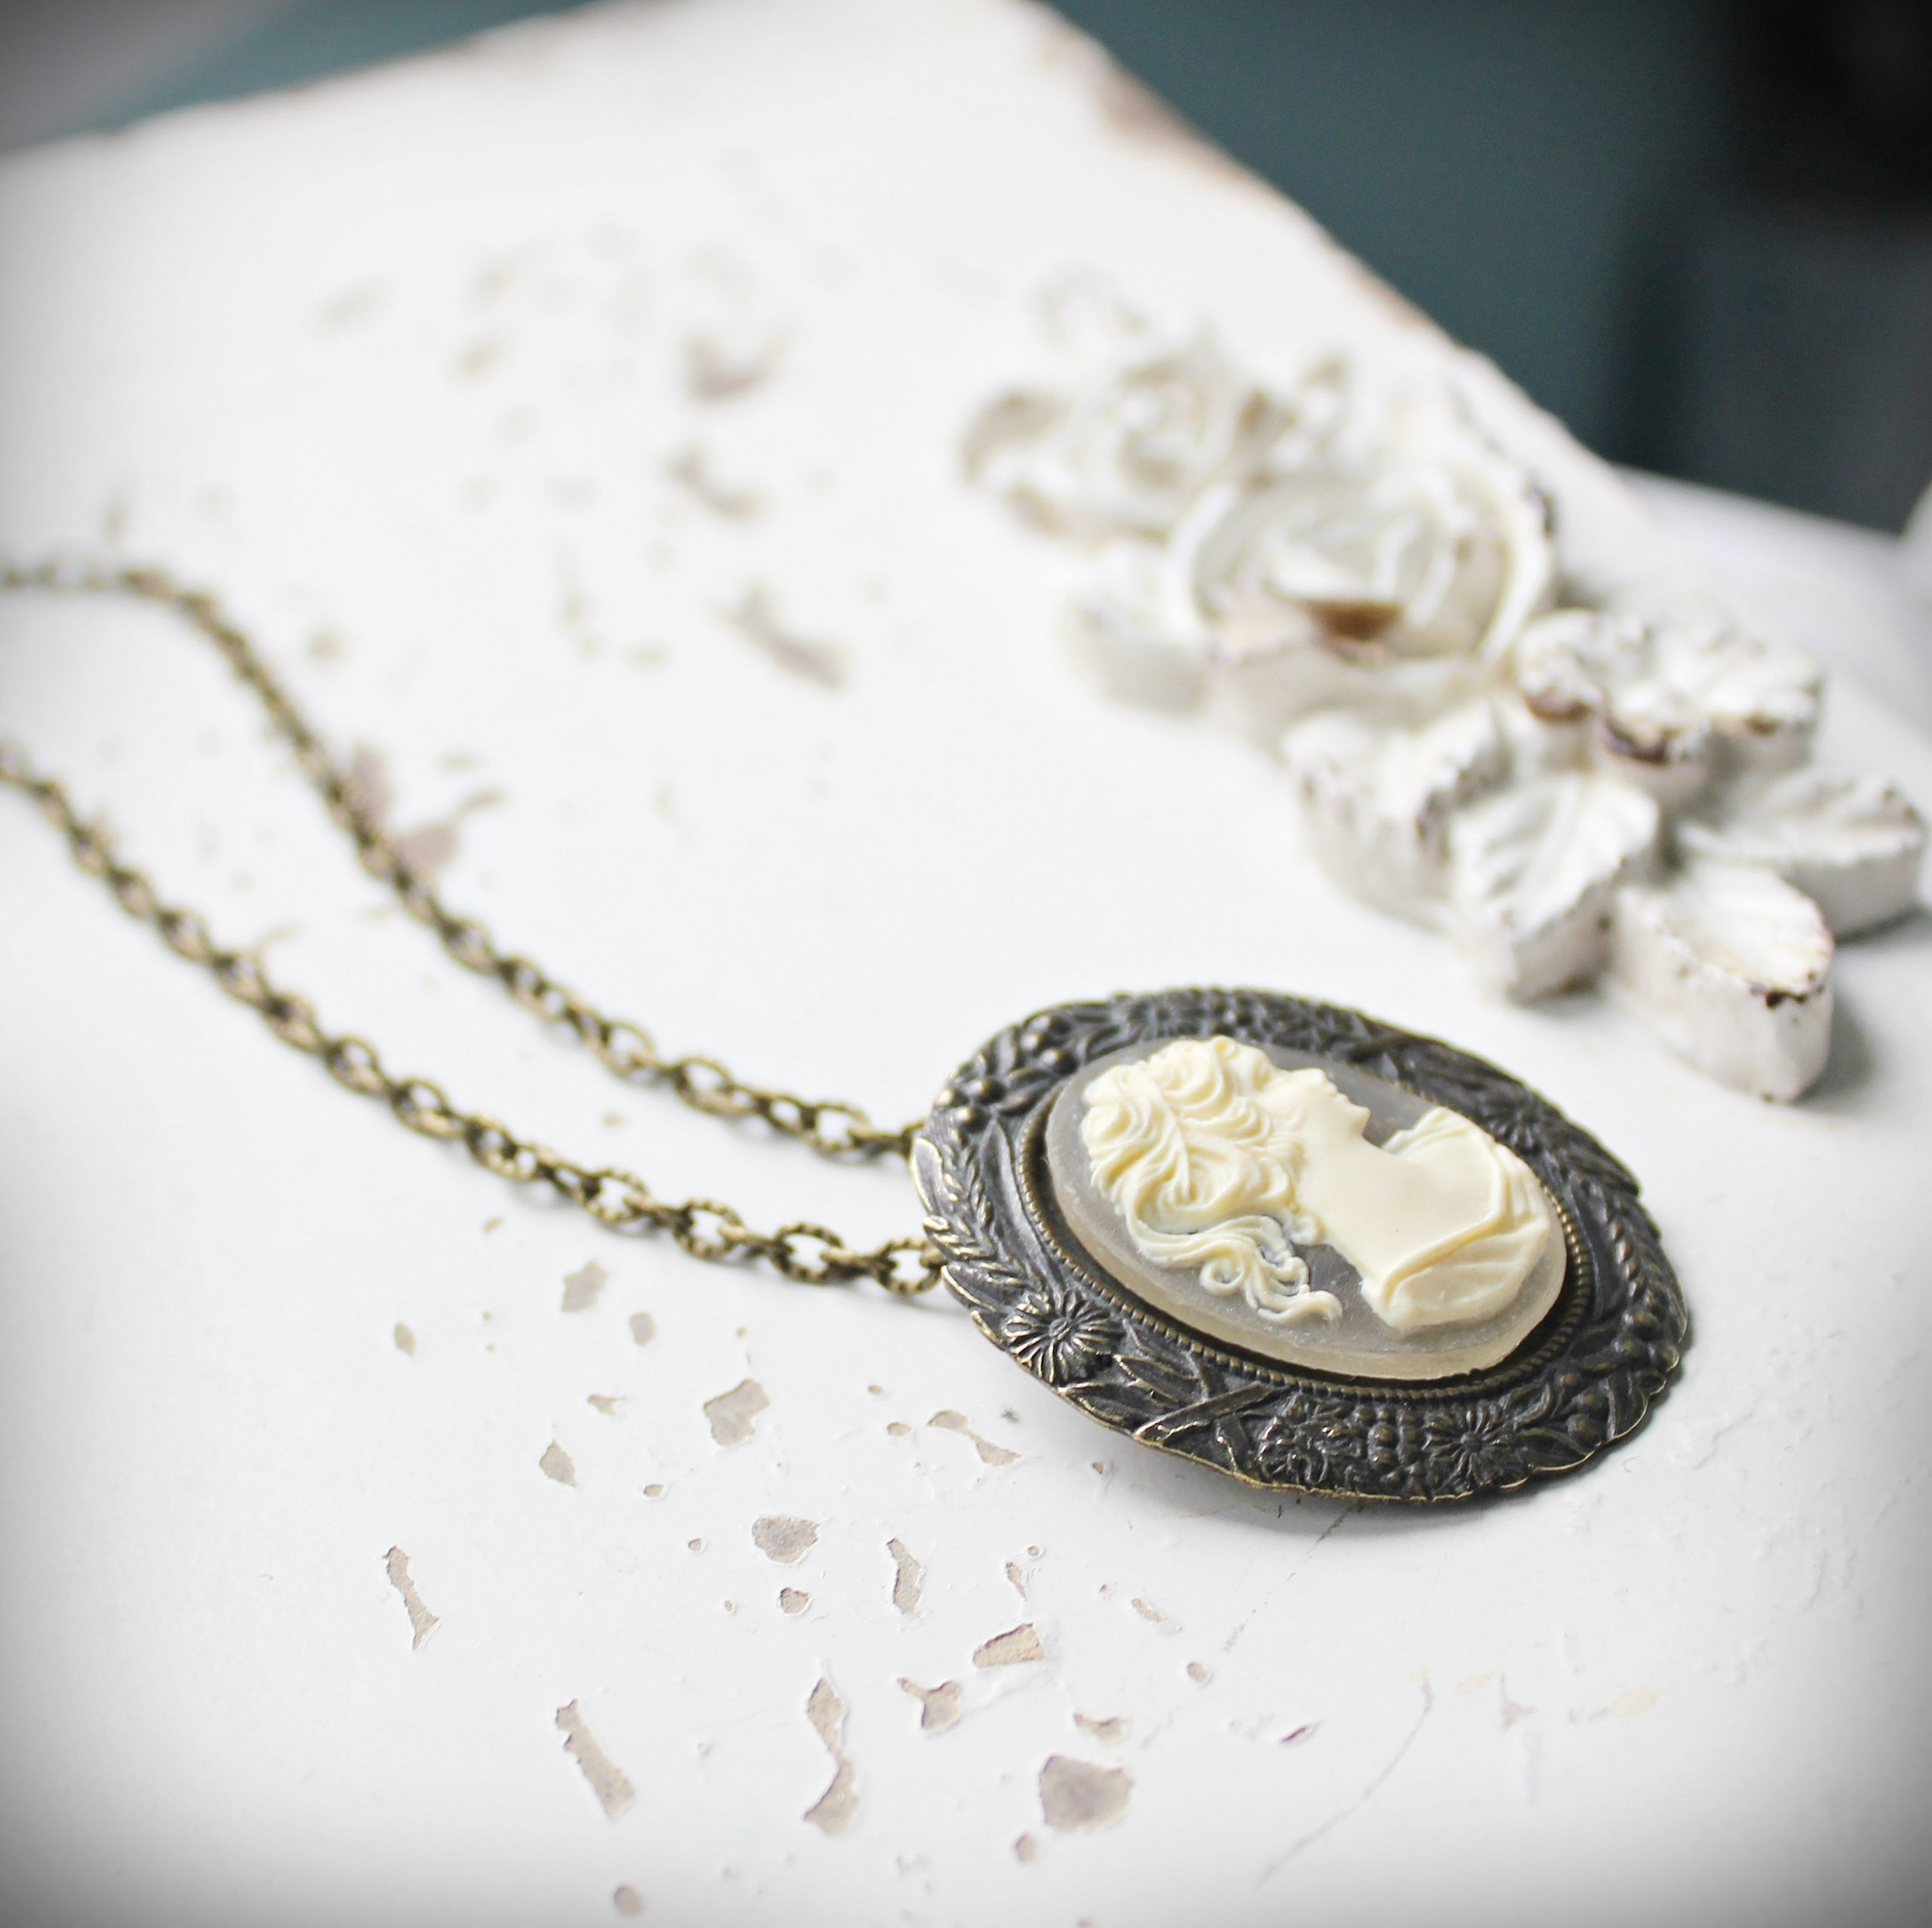 Cream Cameo Brooch and Pendant in Vintage Style